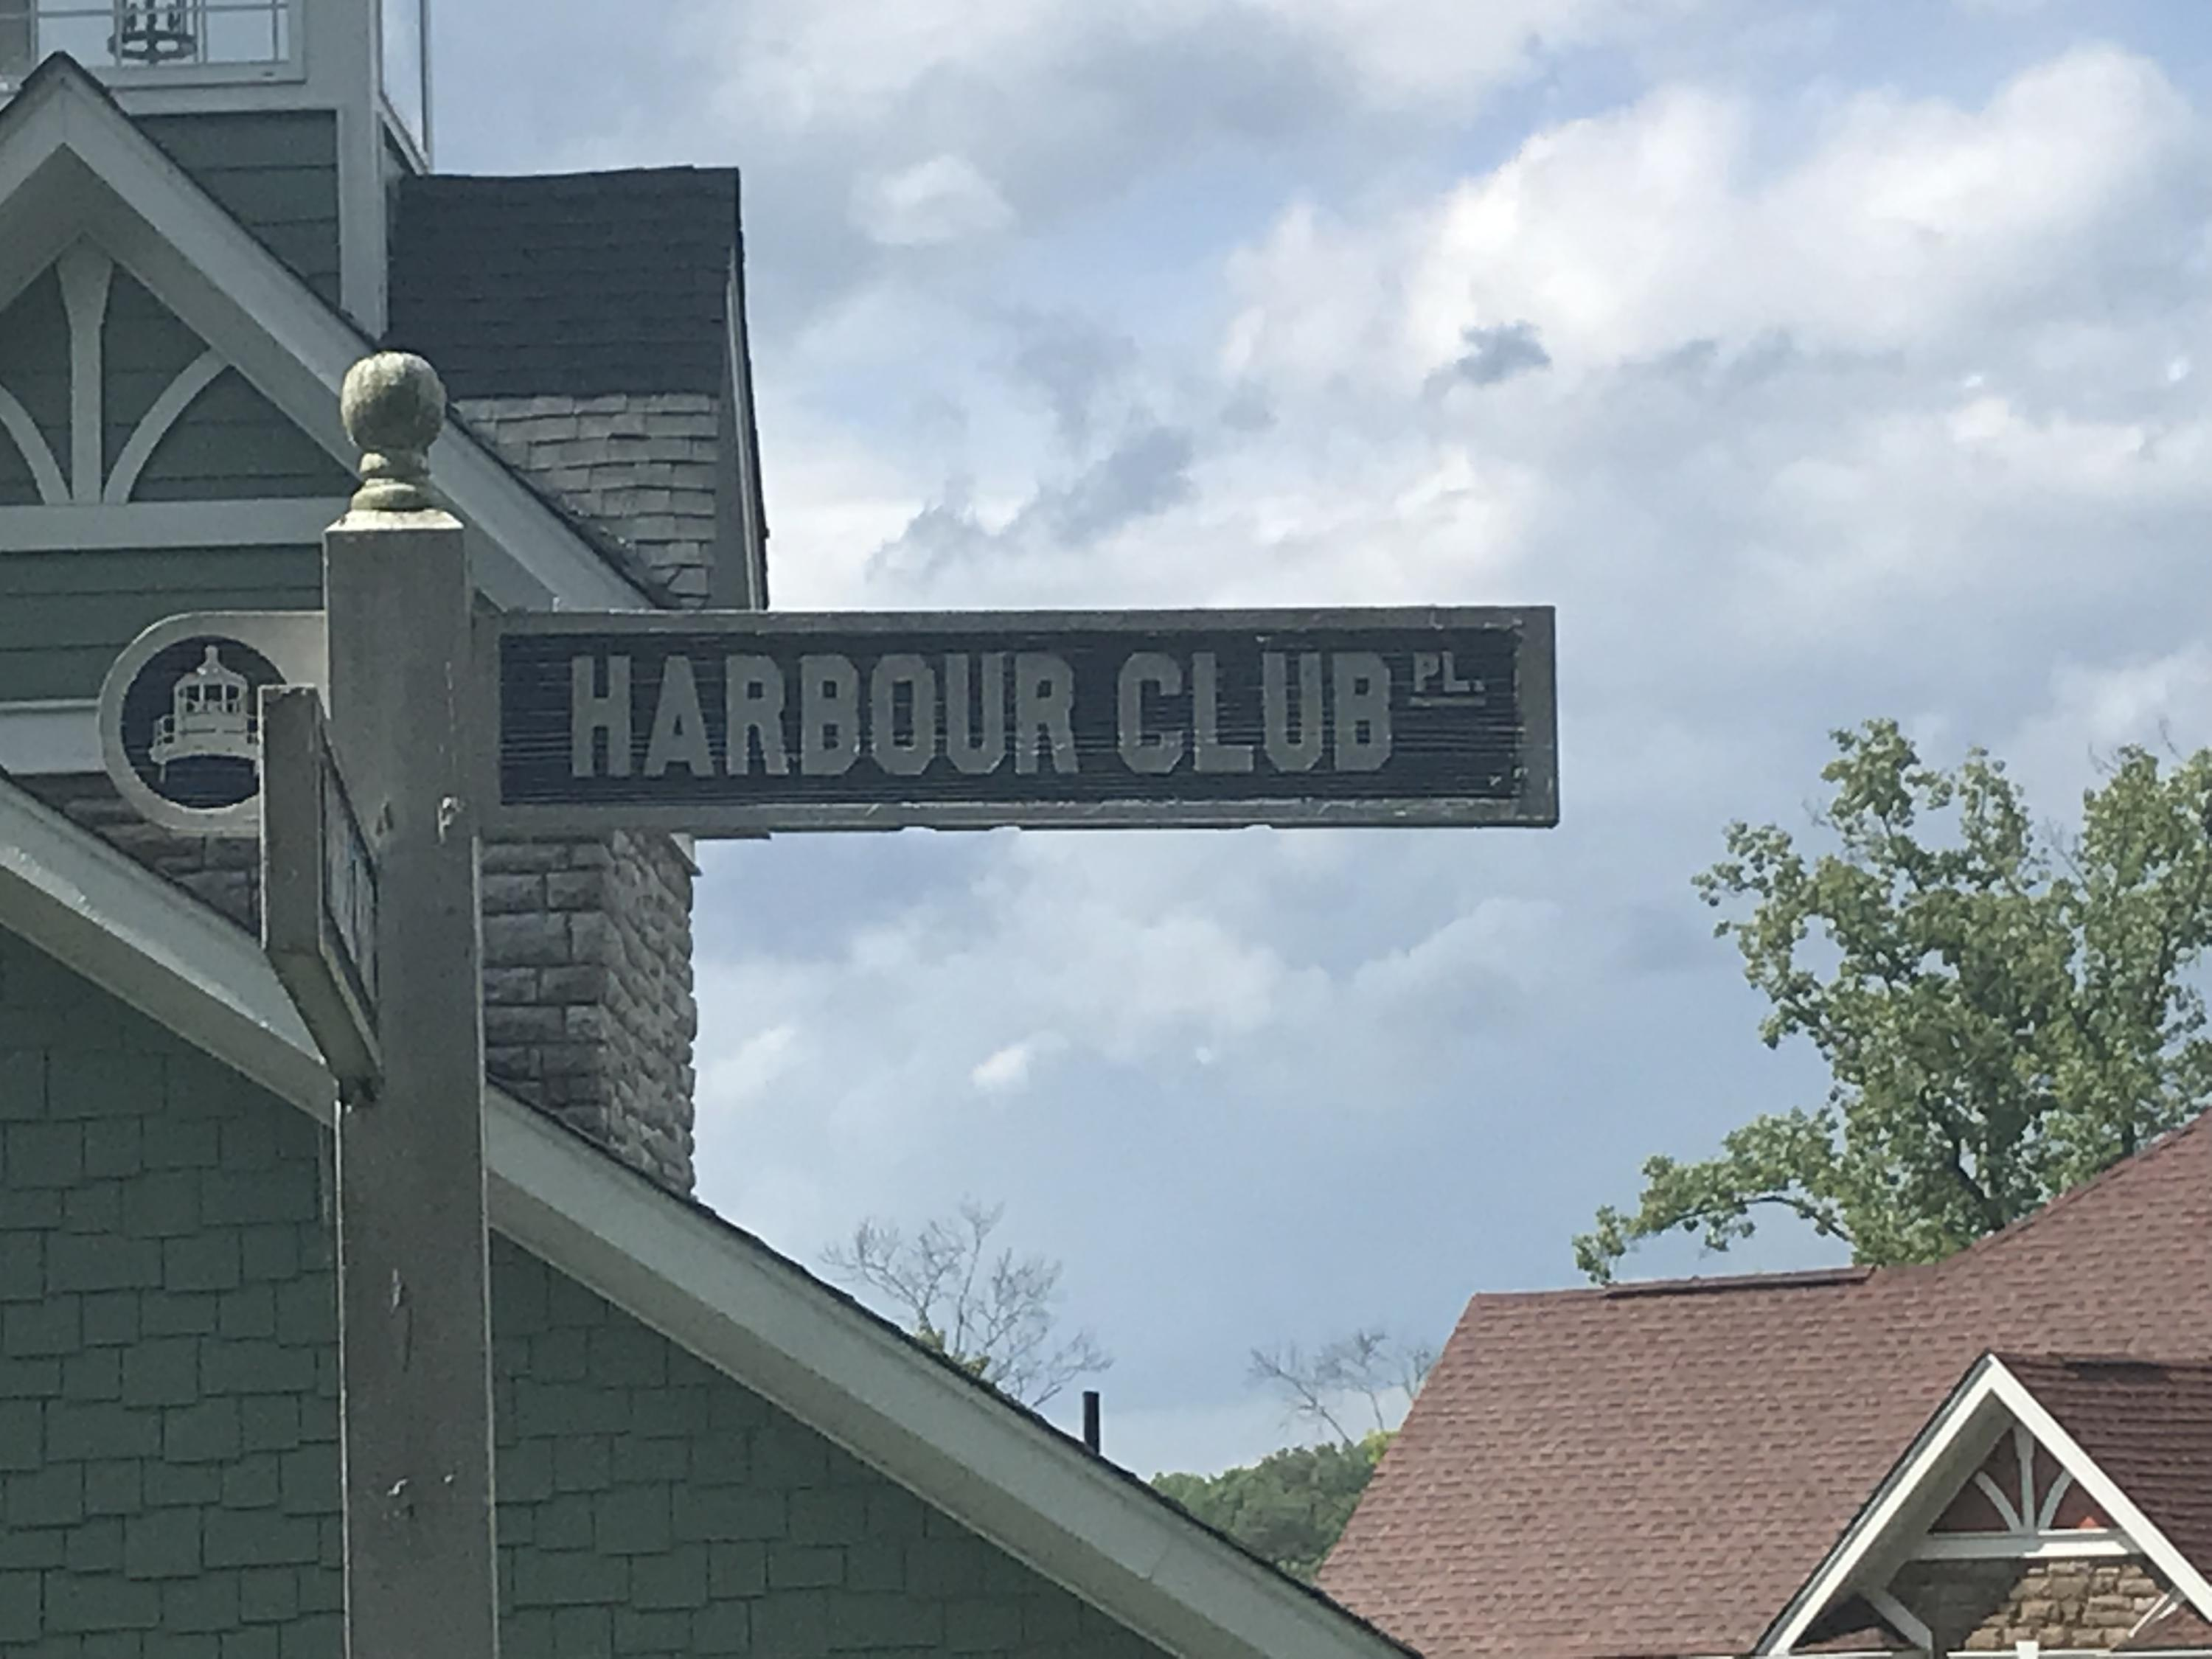 Harbour Club Lot 3 Place: